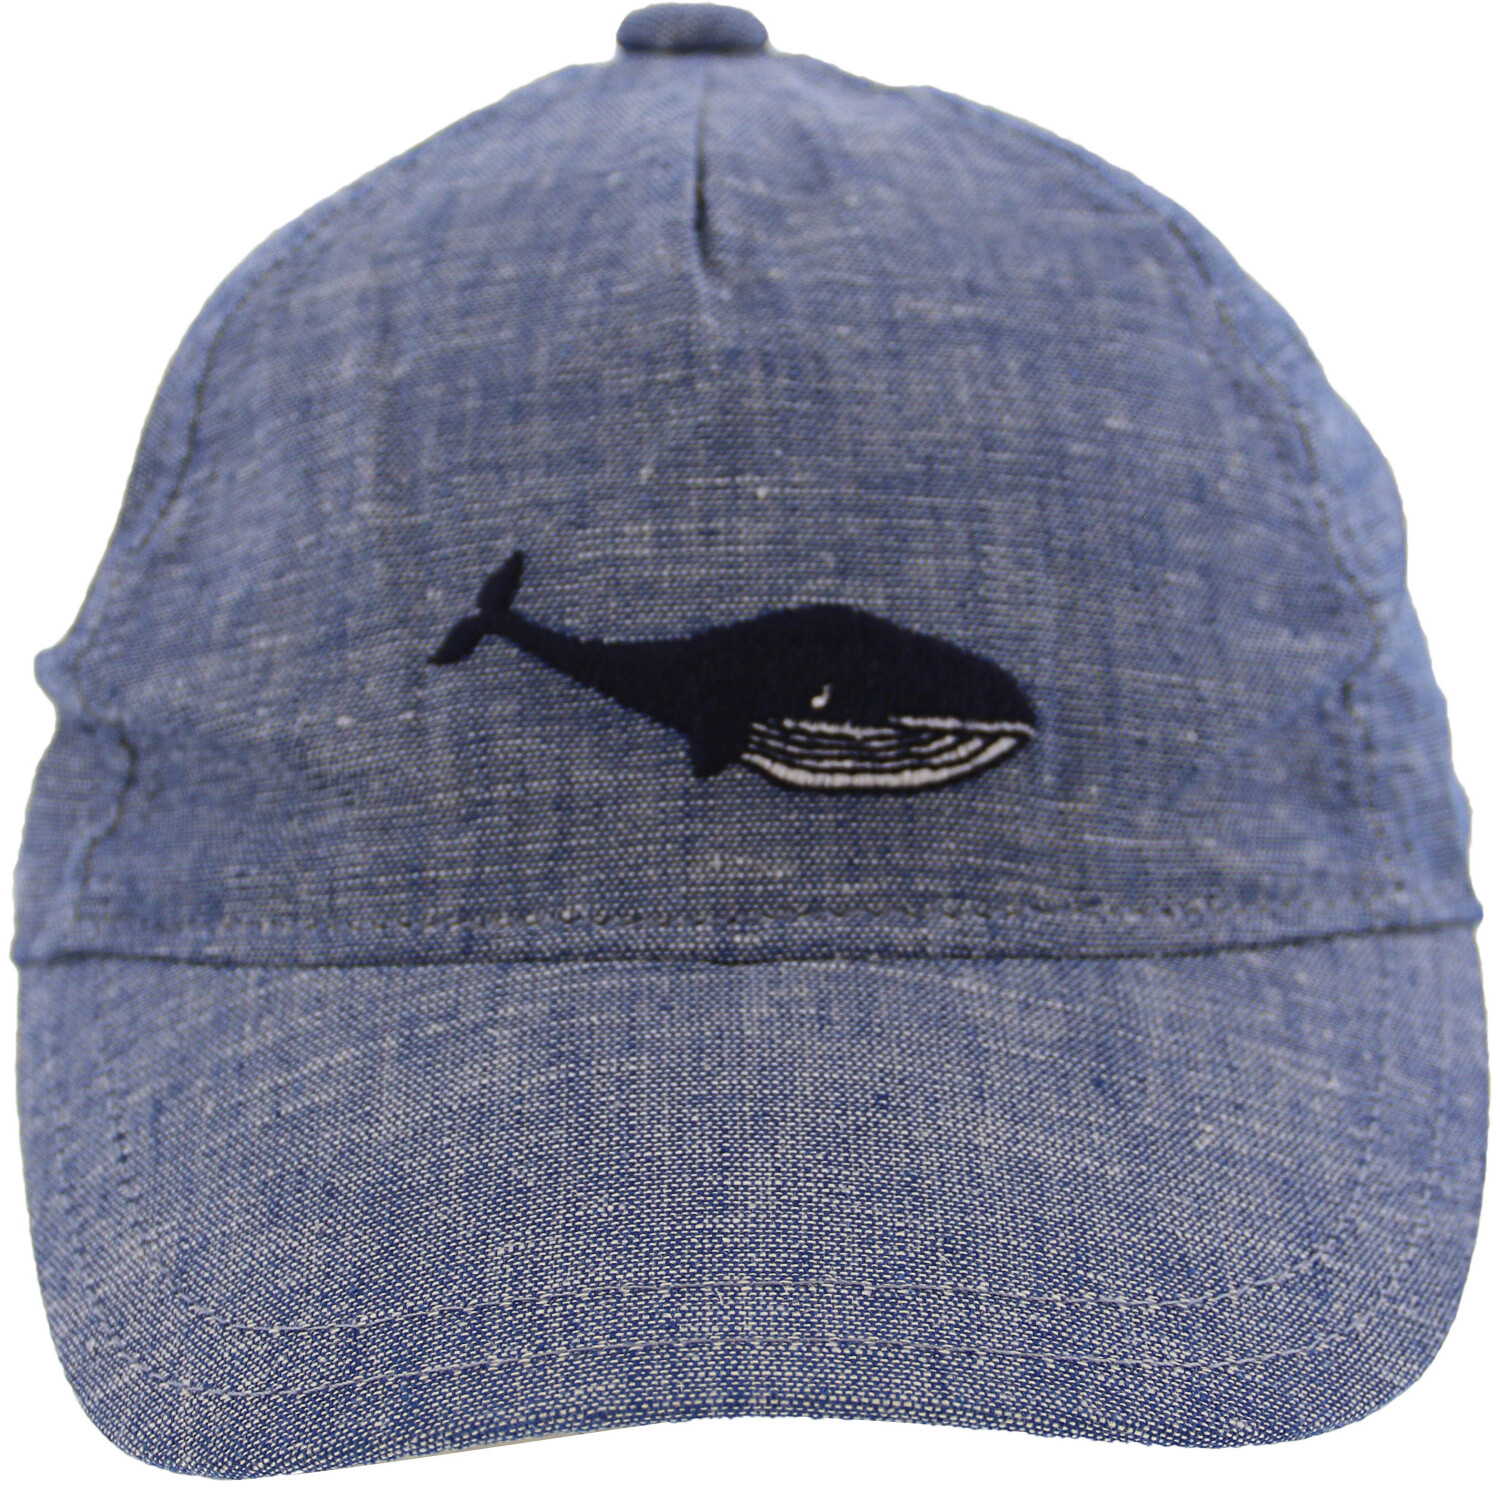 Janie And Jack Blue Whale Cap Hats & - 6-12 Months